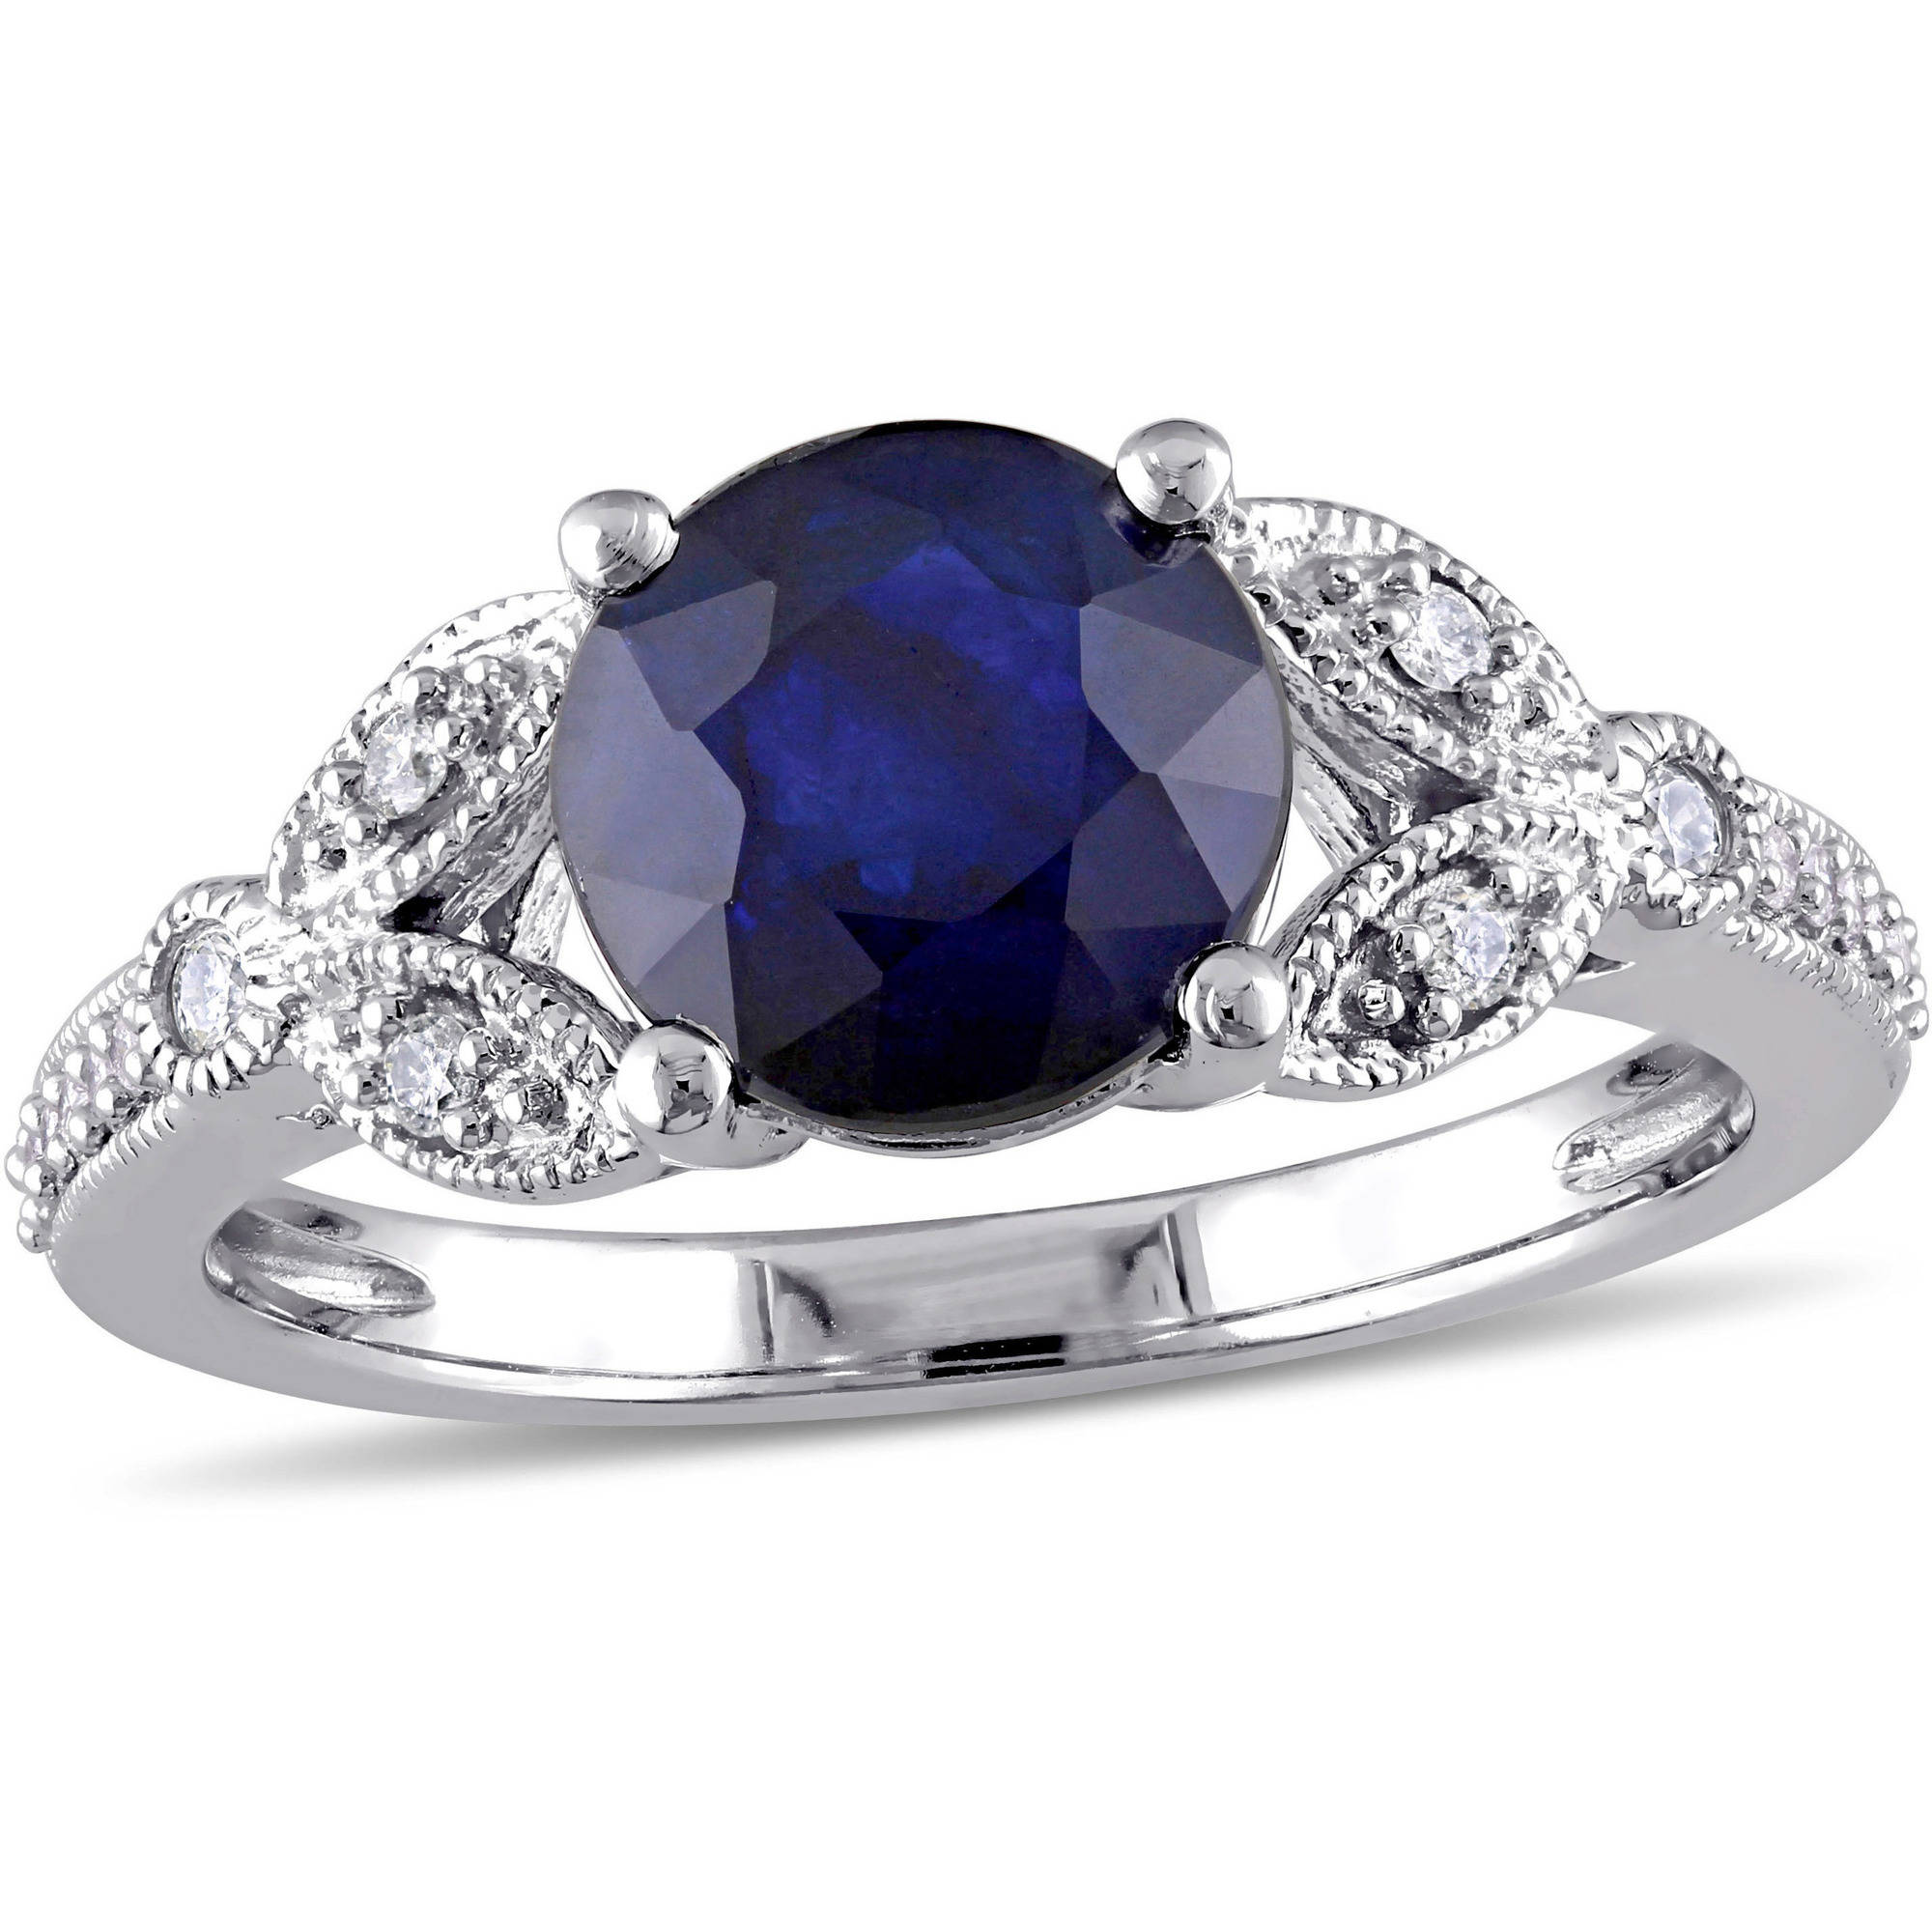 Tangelo 2-1 3 Carat T.G.W. Diffused Sapphire and 1 7 Carat T.W. Diamond 10kt White Gold Vintage Engagement Ring by Tangelo